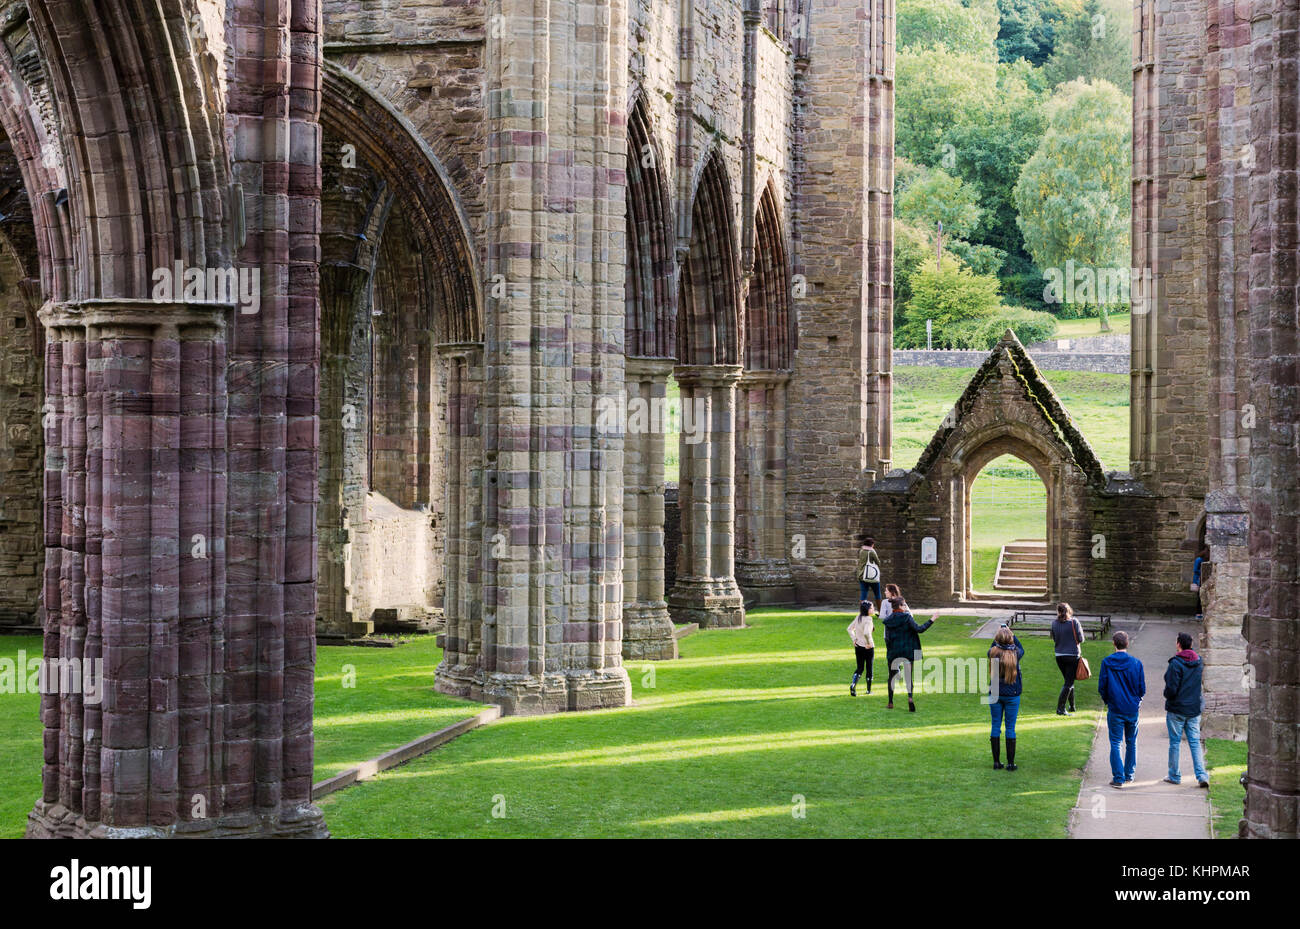 Tintern Abbey, Monmouthshire, Wales, United Kingdom.  The abbey was founded in 1131. - Stock Image